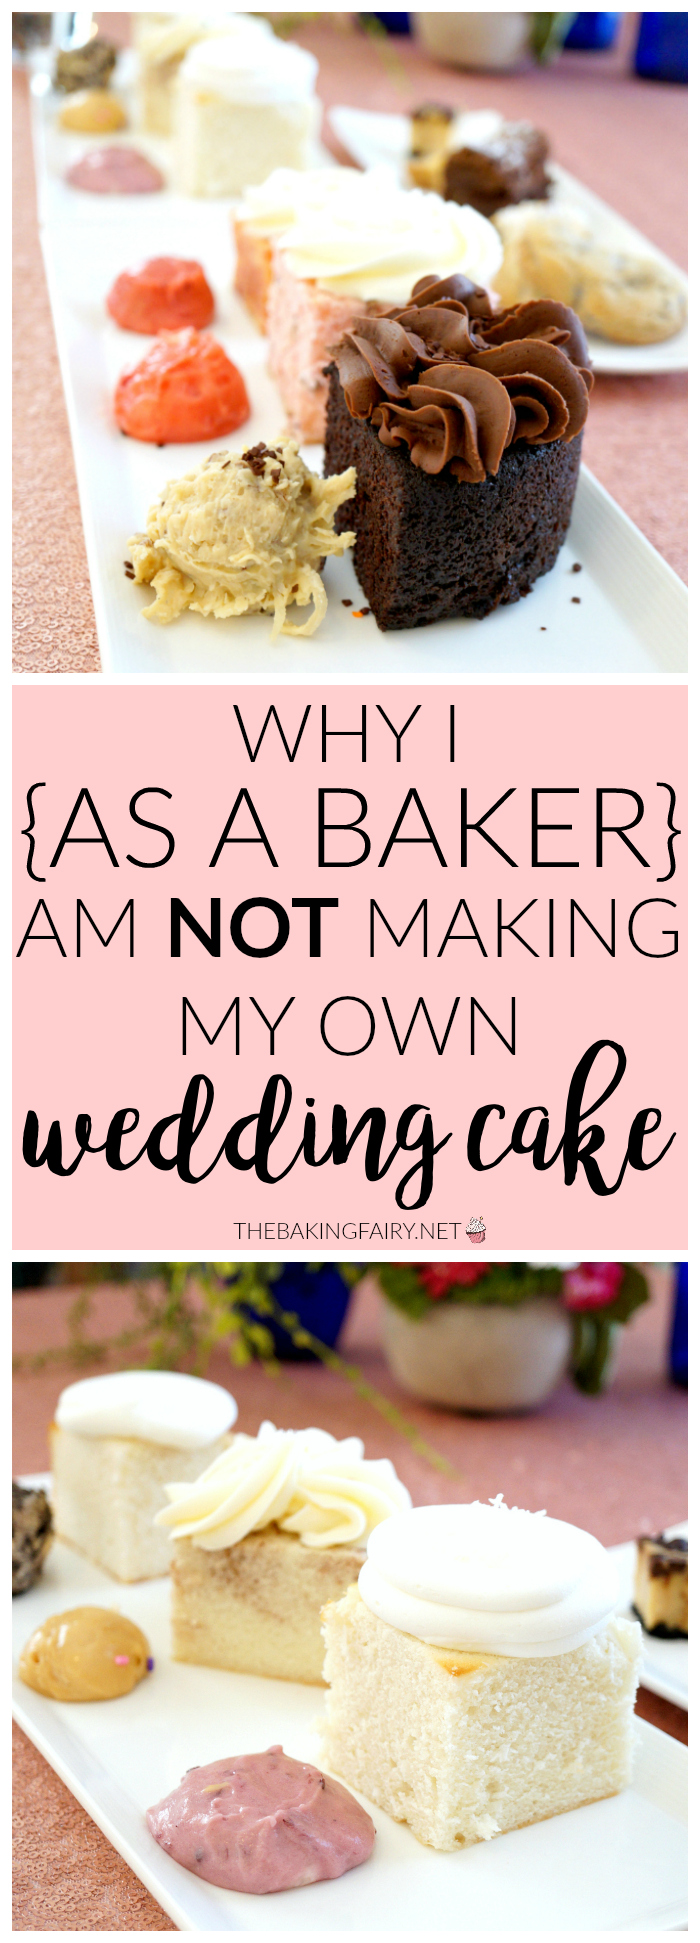 why I {as a baker!} chose NOT to make my wedding cake | The Baking Fairy